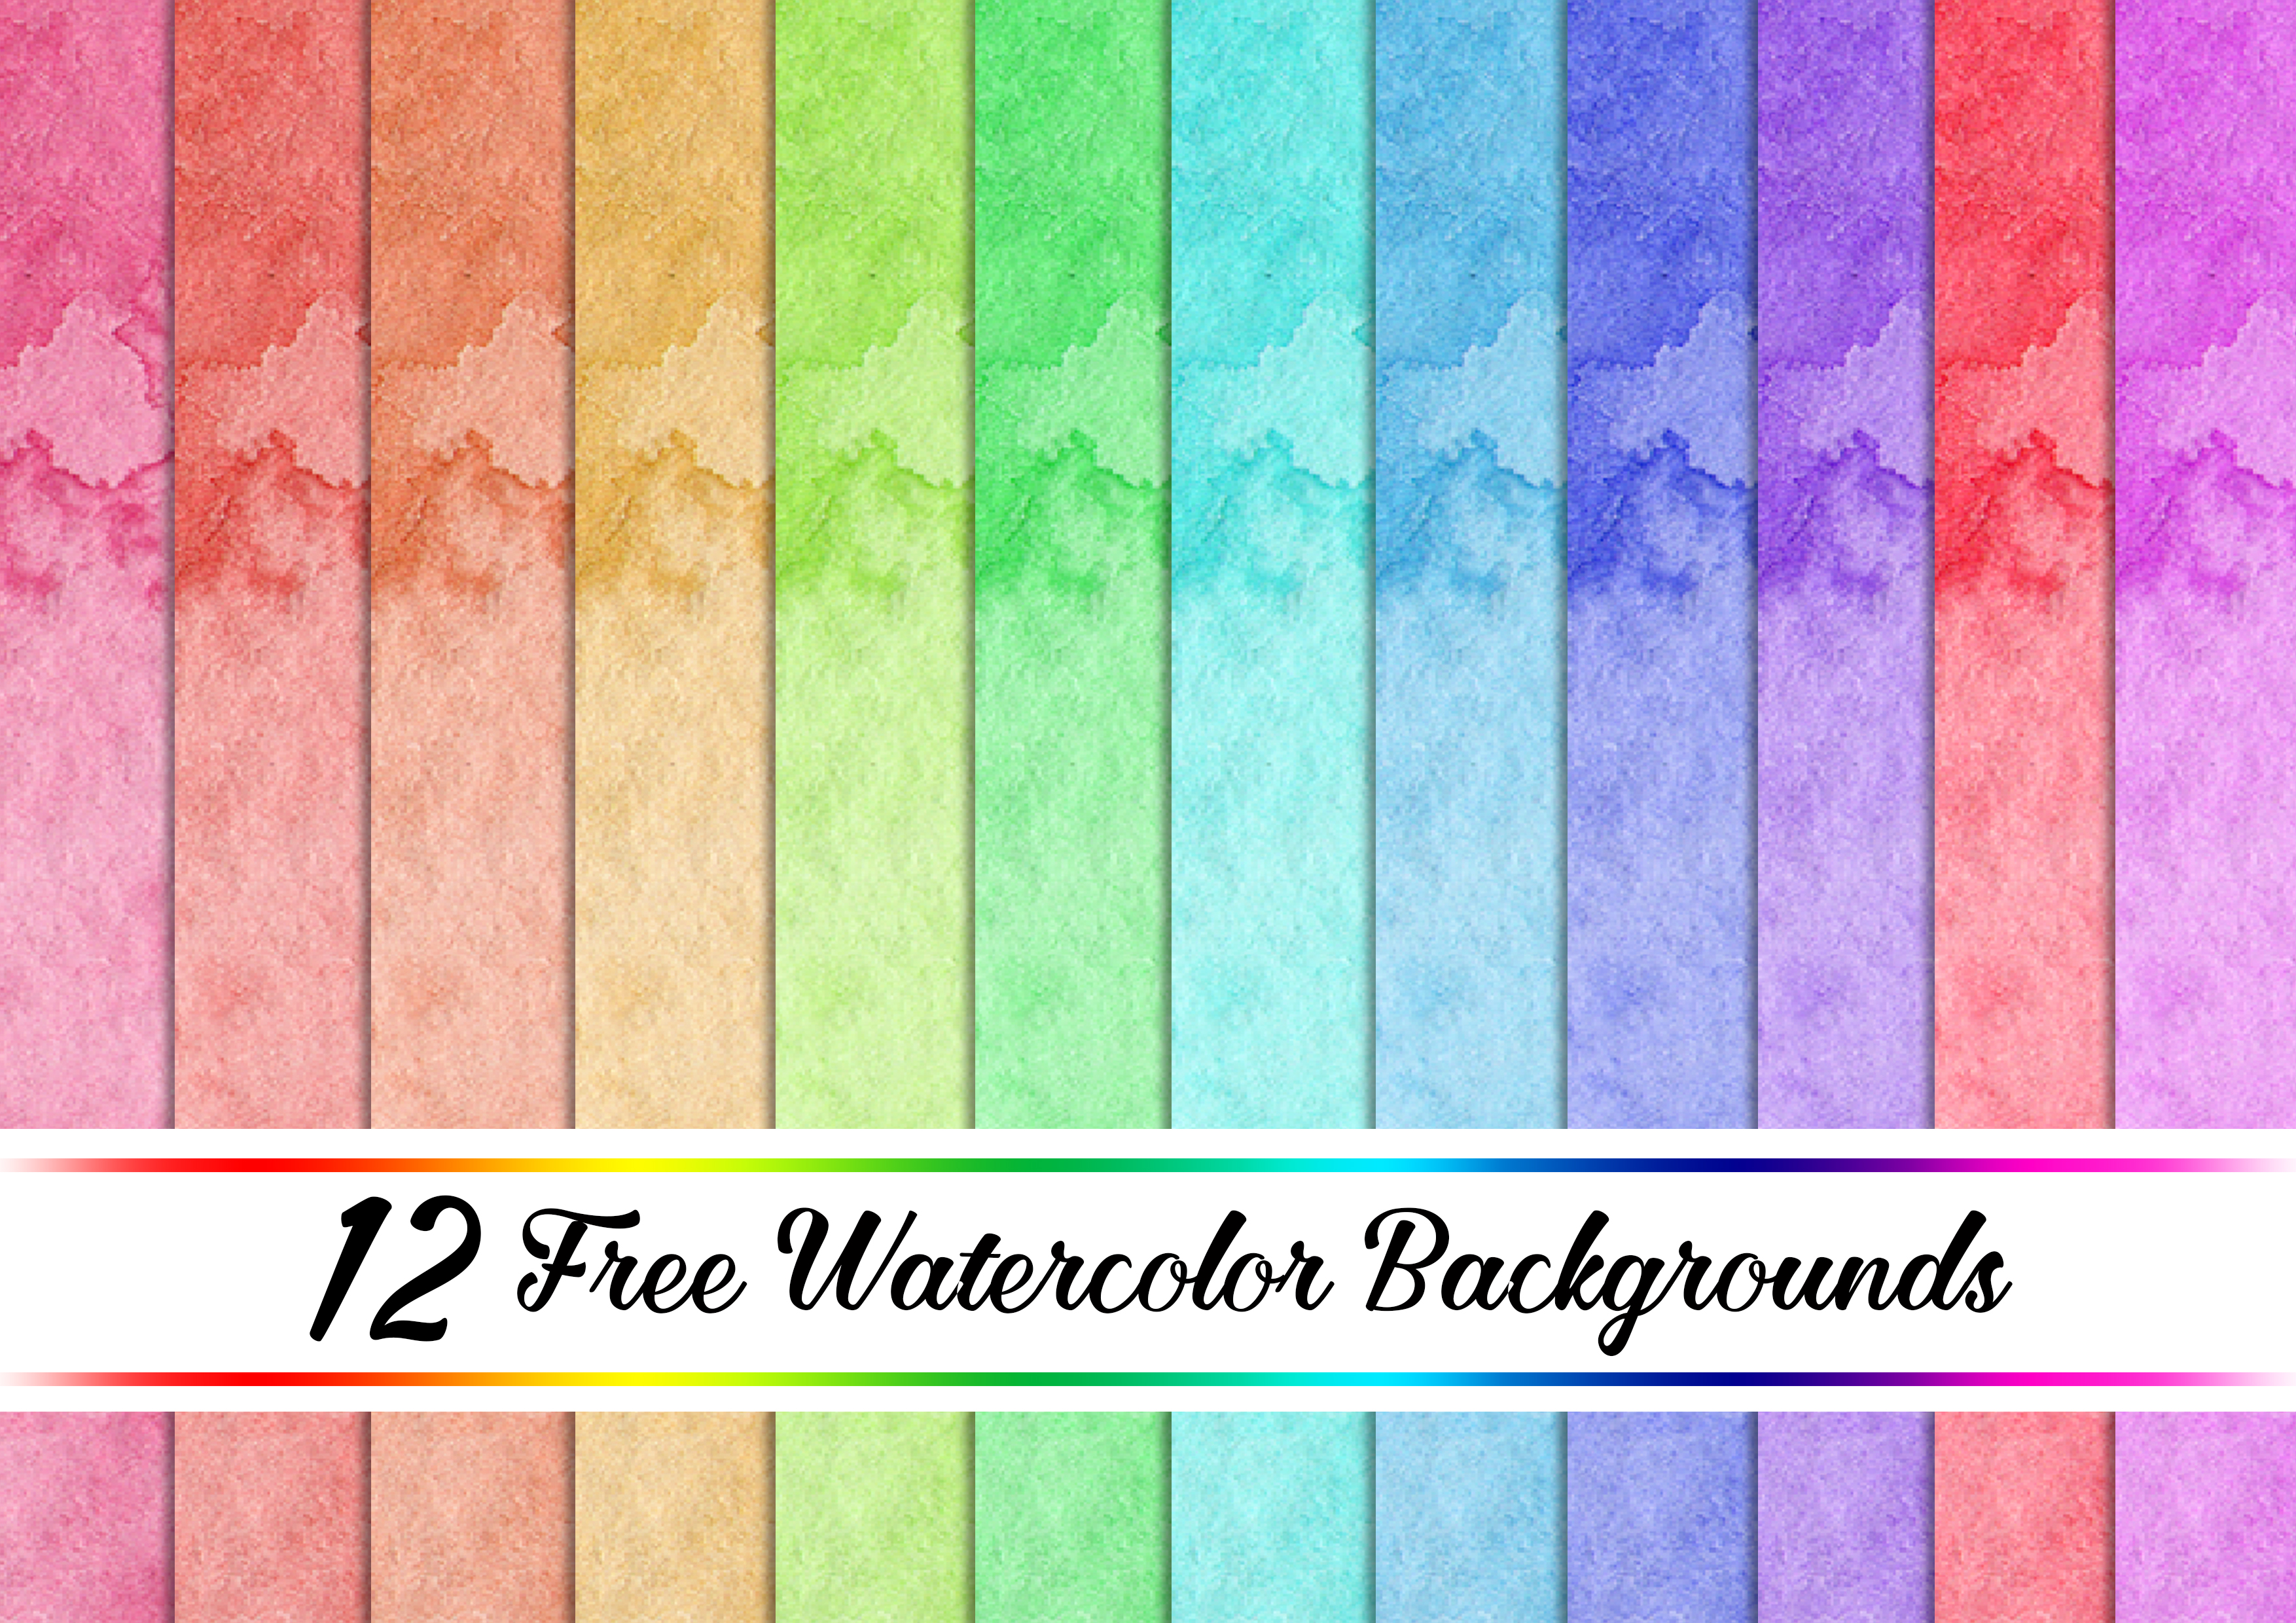 12 Free Watercolour Backgrounds